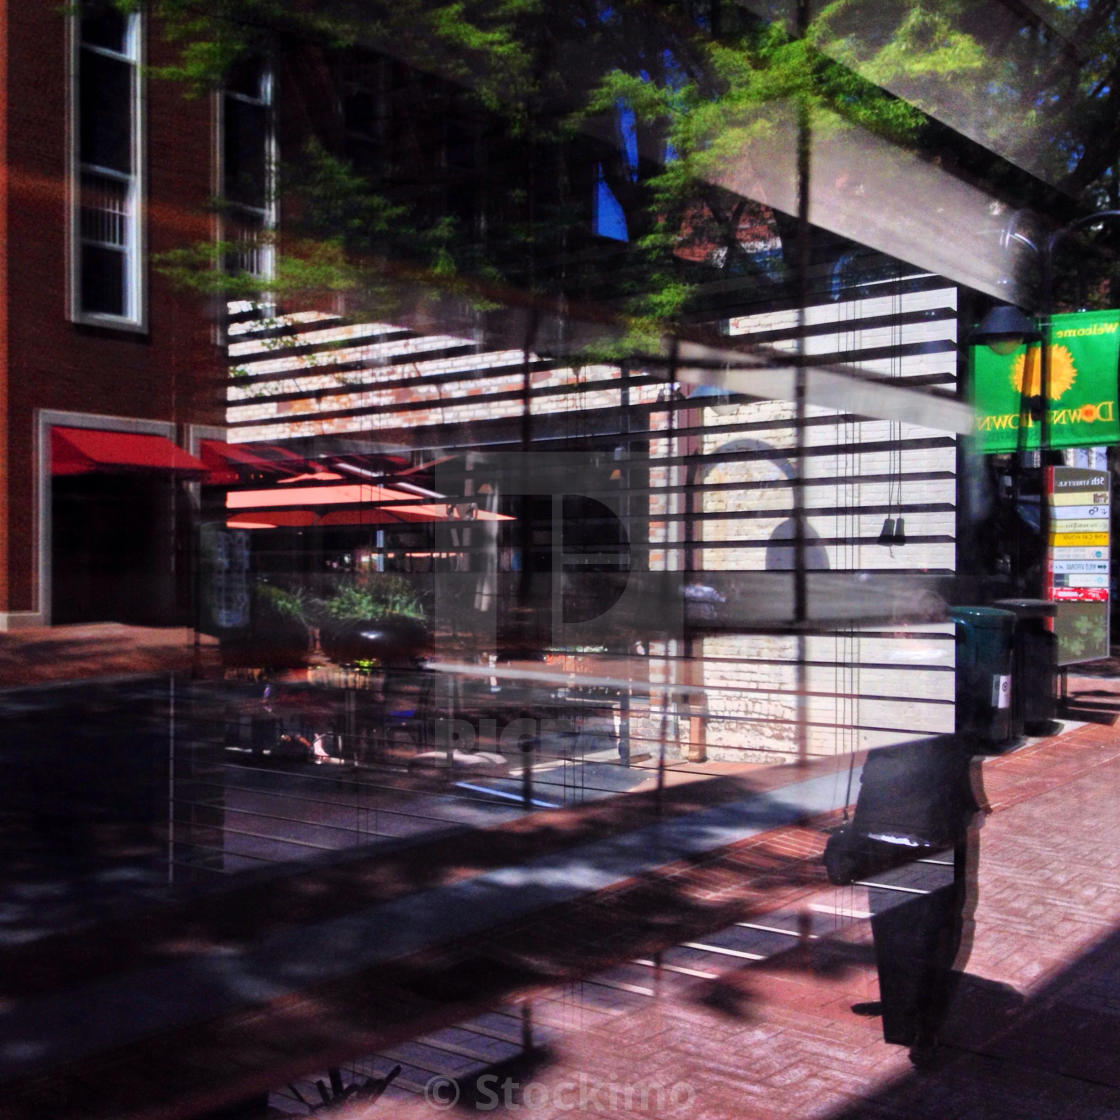 """Storefront reflections on The Mall in Charlottesville, VA"" stock image"